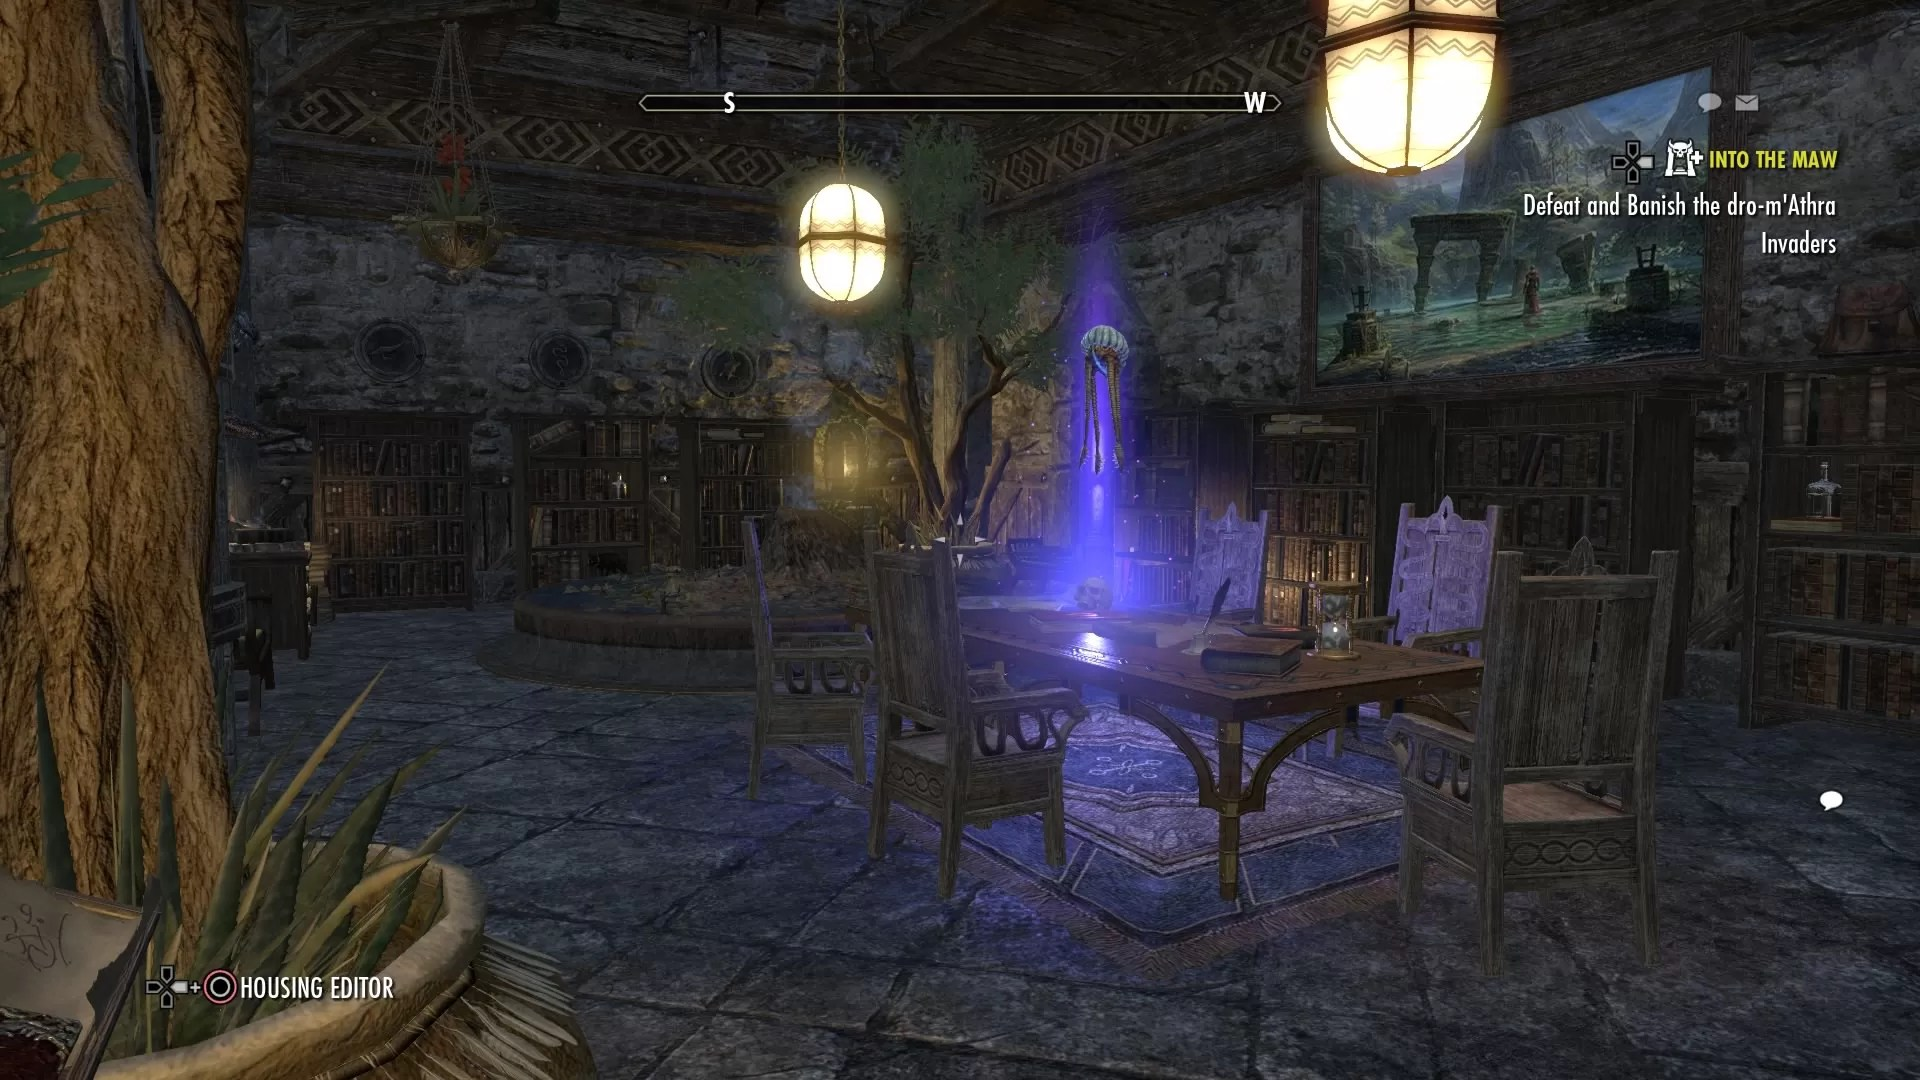 The library of Spirit and Time [PS4]